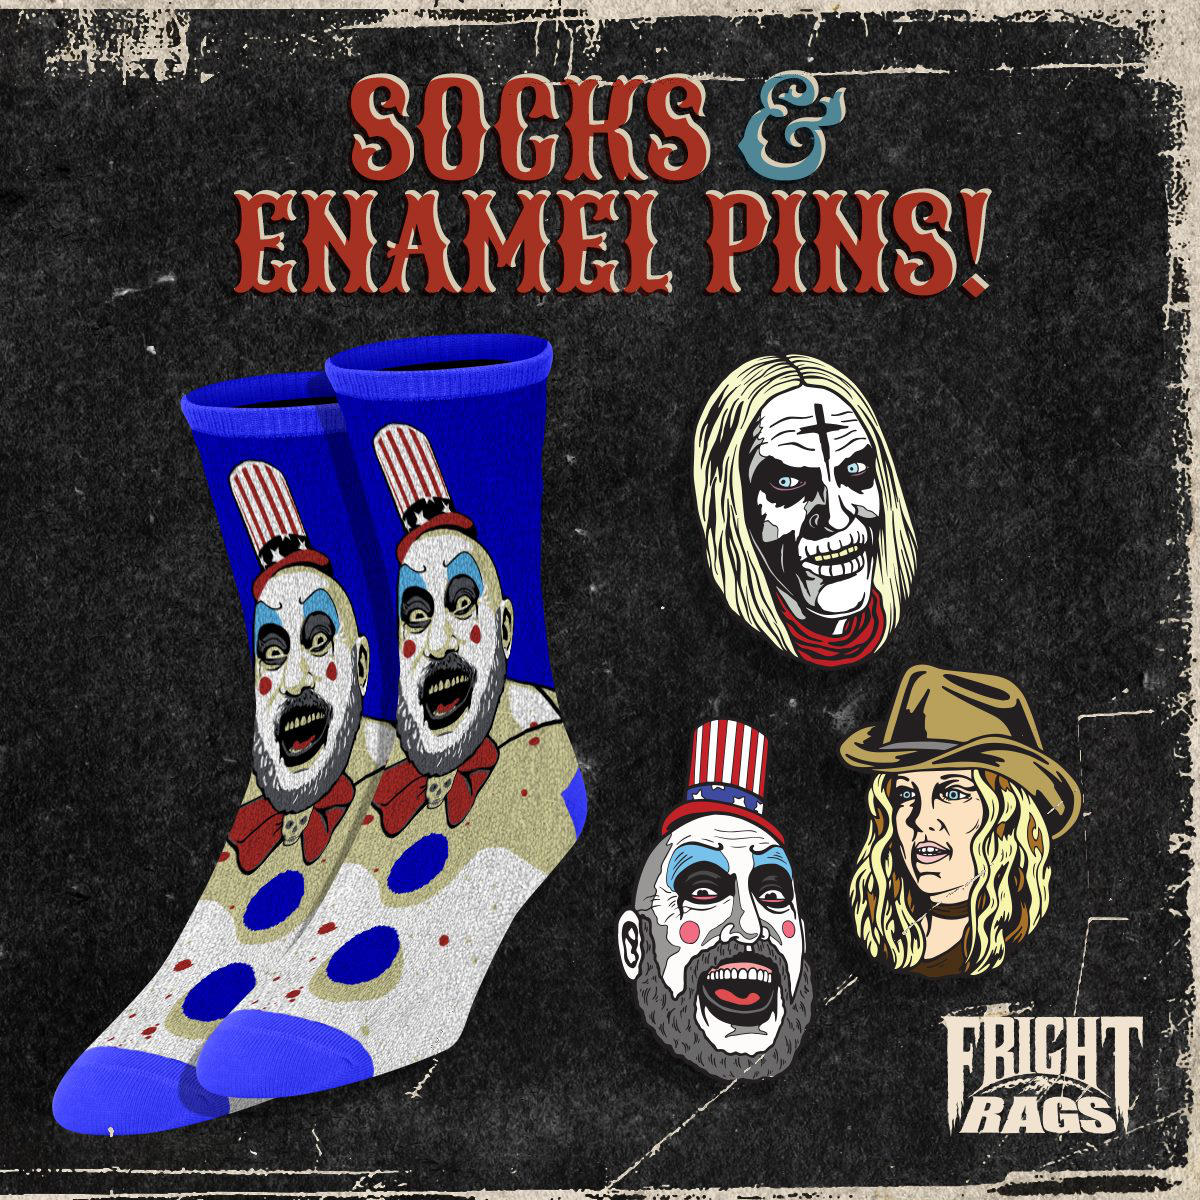 Fright Rags House og 1000 Corpses 4 - Fright-Rags Announces New HOUSE OF 1000 CORPSES Collection!